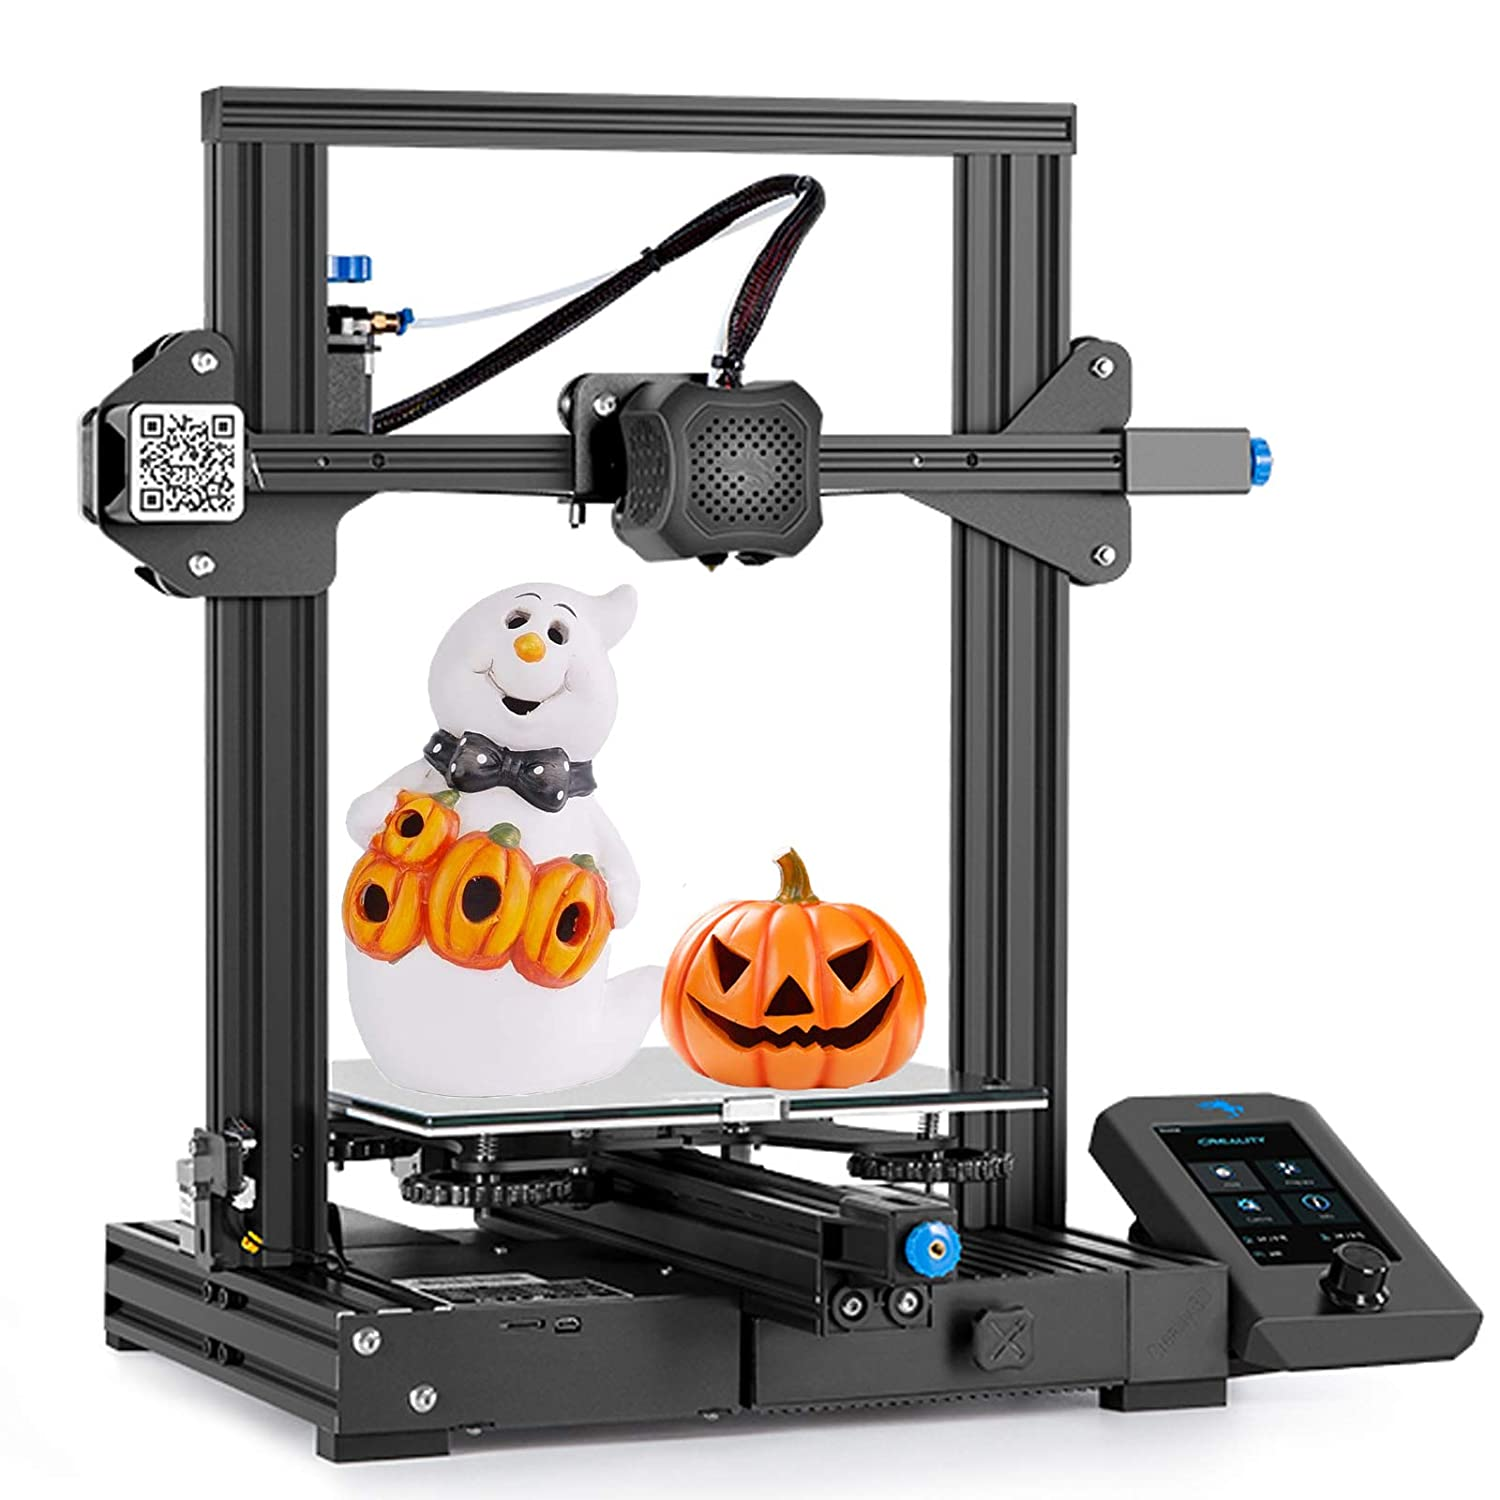 Upgraded Creality Ender 3 V2 3D Printer with Integrated Structure Design Silent Mainboard Carborundum Glass Bed Build Volume 220 x 220 x 250mm Ideal for 3D Enthusiasts